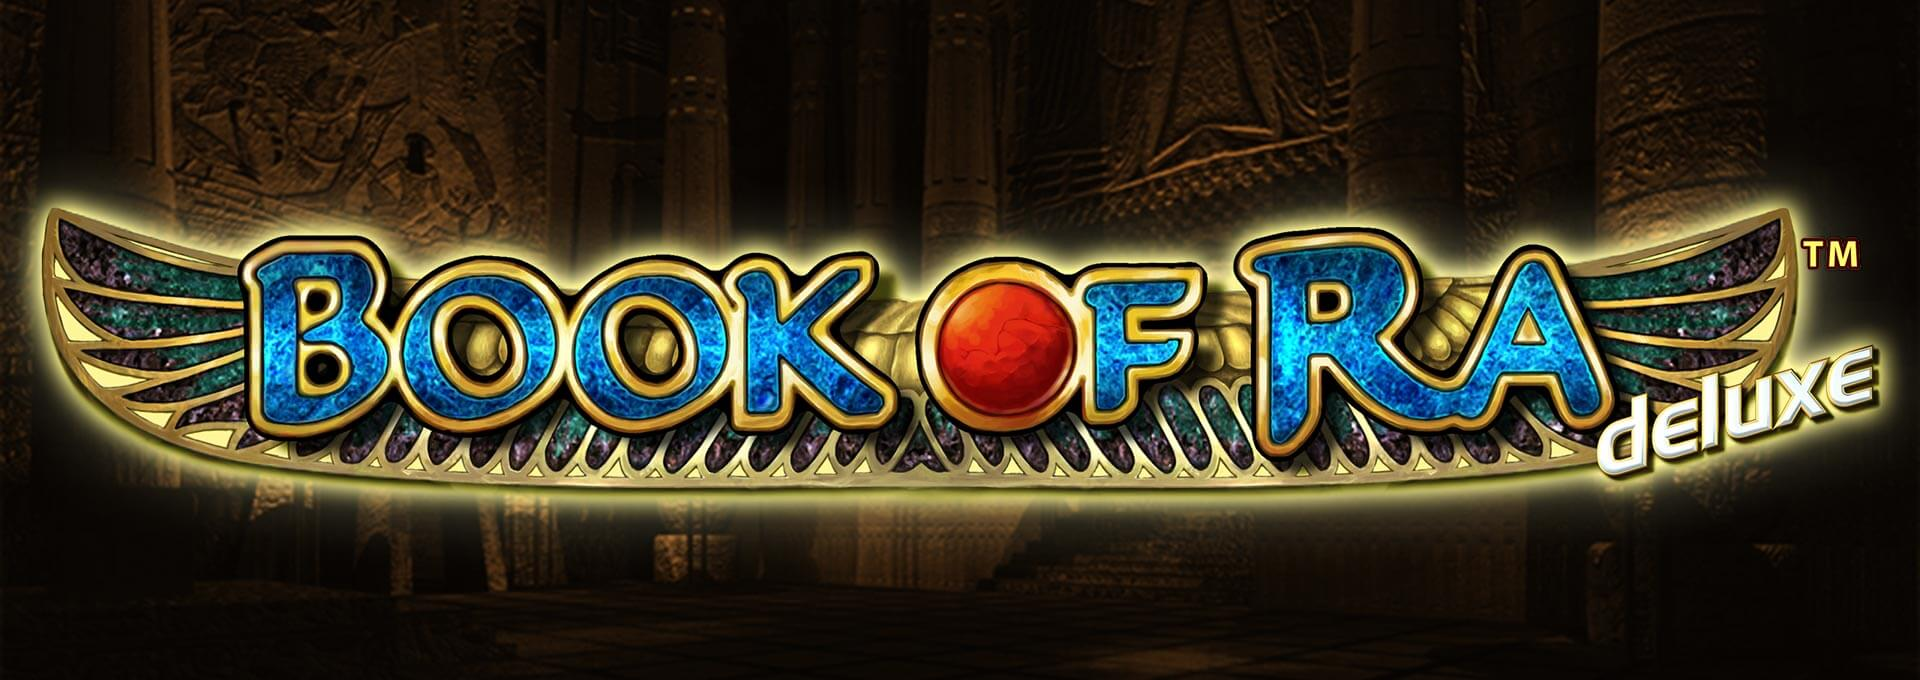 casino online deutschland book of ra deluxe download